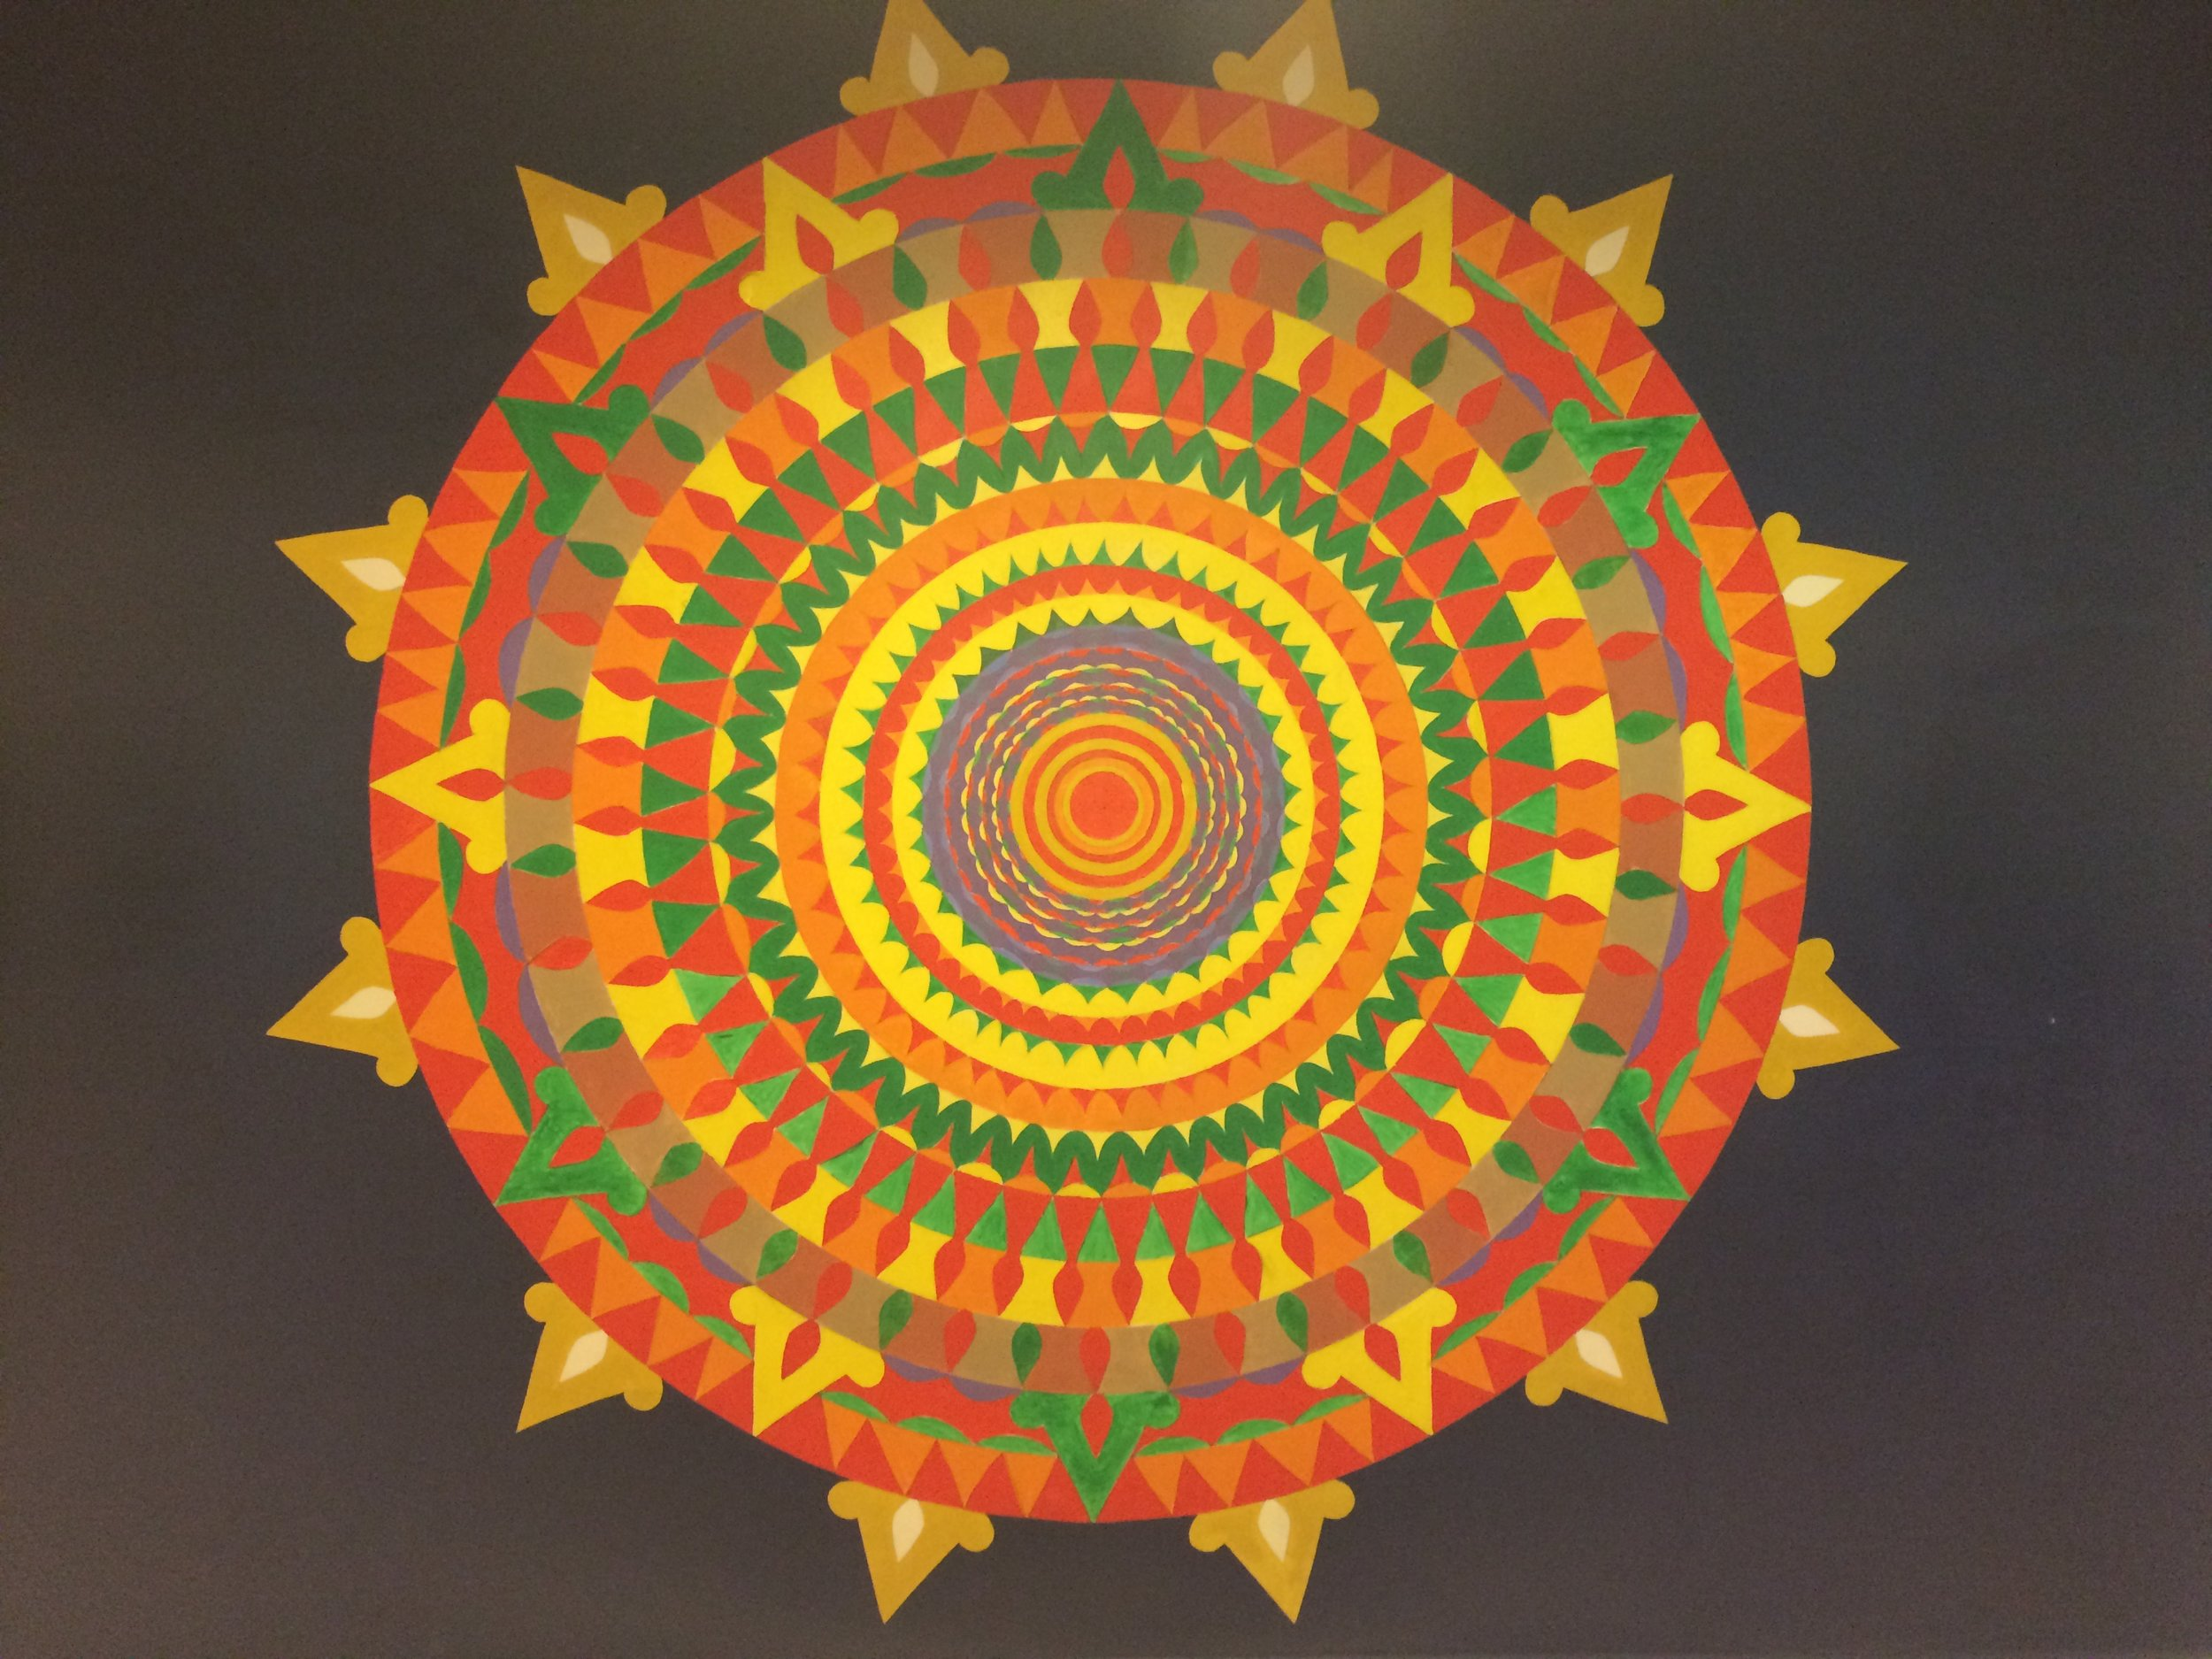 """Symposium and field trip with AU historians to Pasaquan (""""visionary art environment""""), in Buena Vista. GA"""